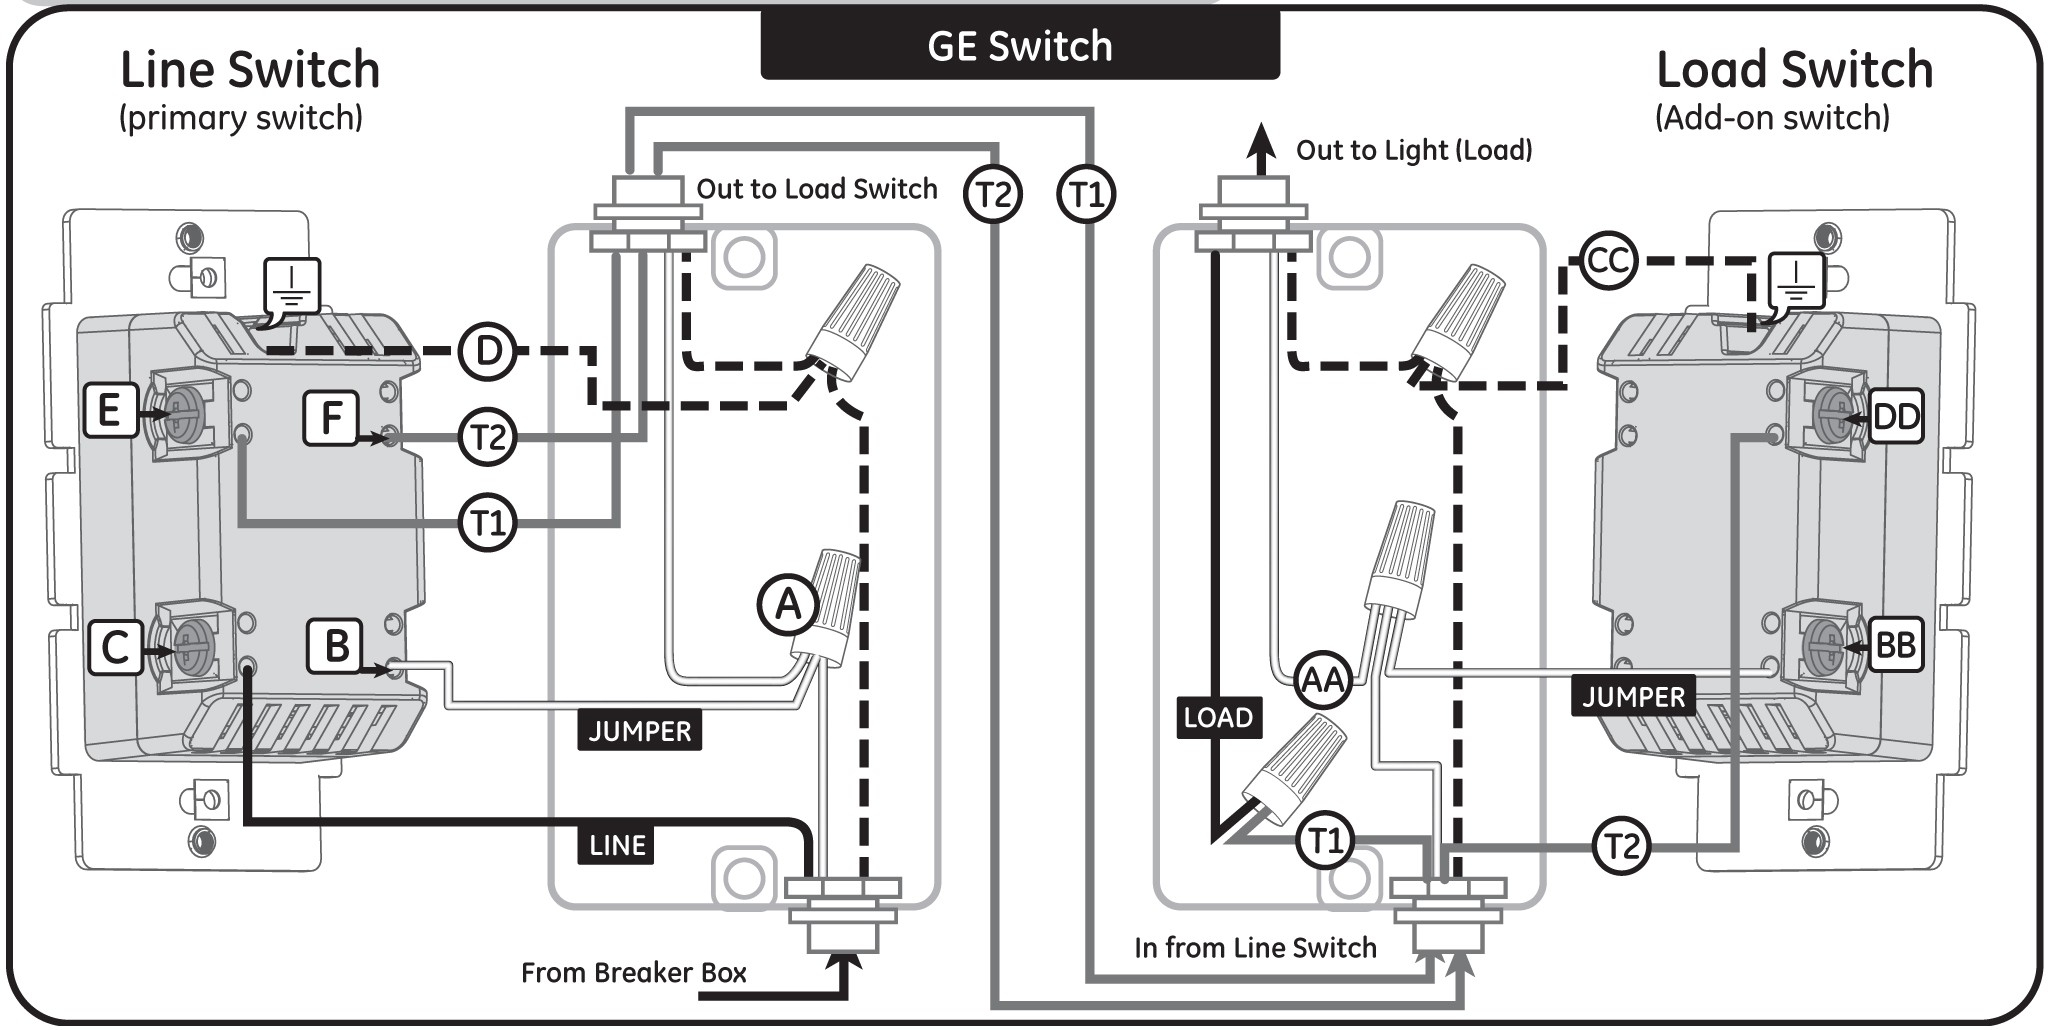 4 way switch wiring diagram with dimmer wiring diagram ge 3 way dimmer switch wiring diagram  ge 3 way dimmer switch wiring diagram